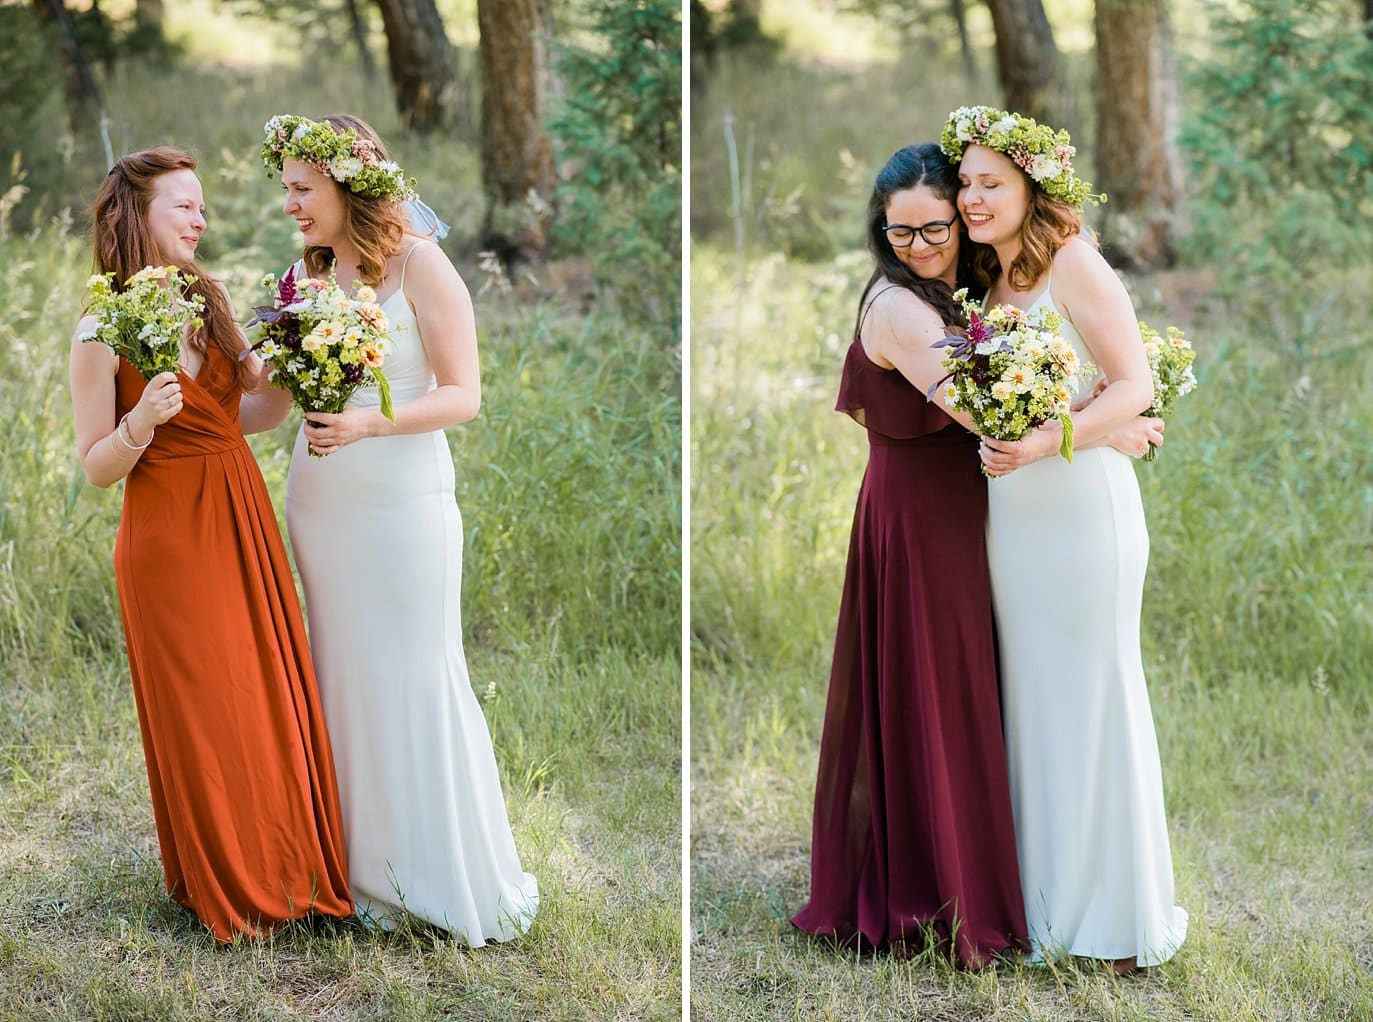 bride and bridesmaids in jewel toned dresses photo